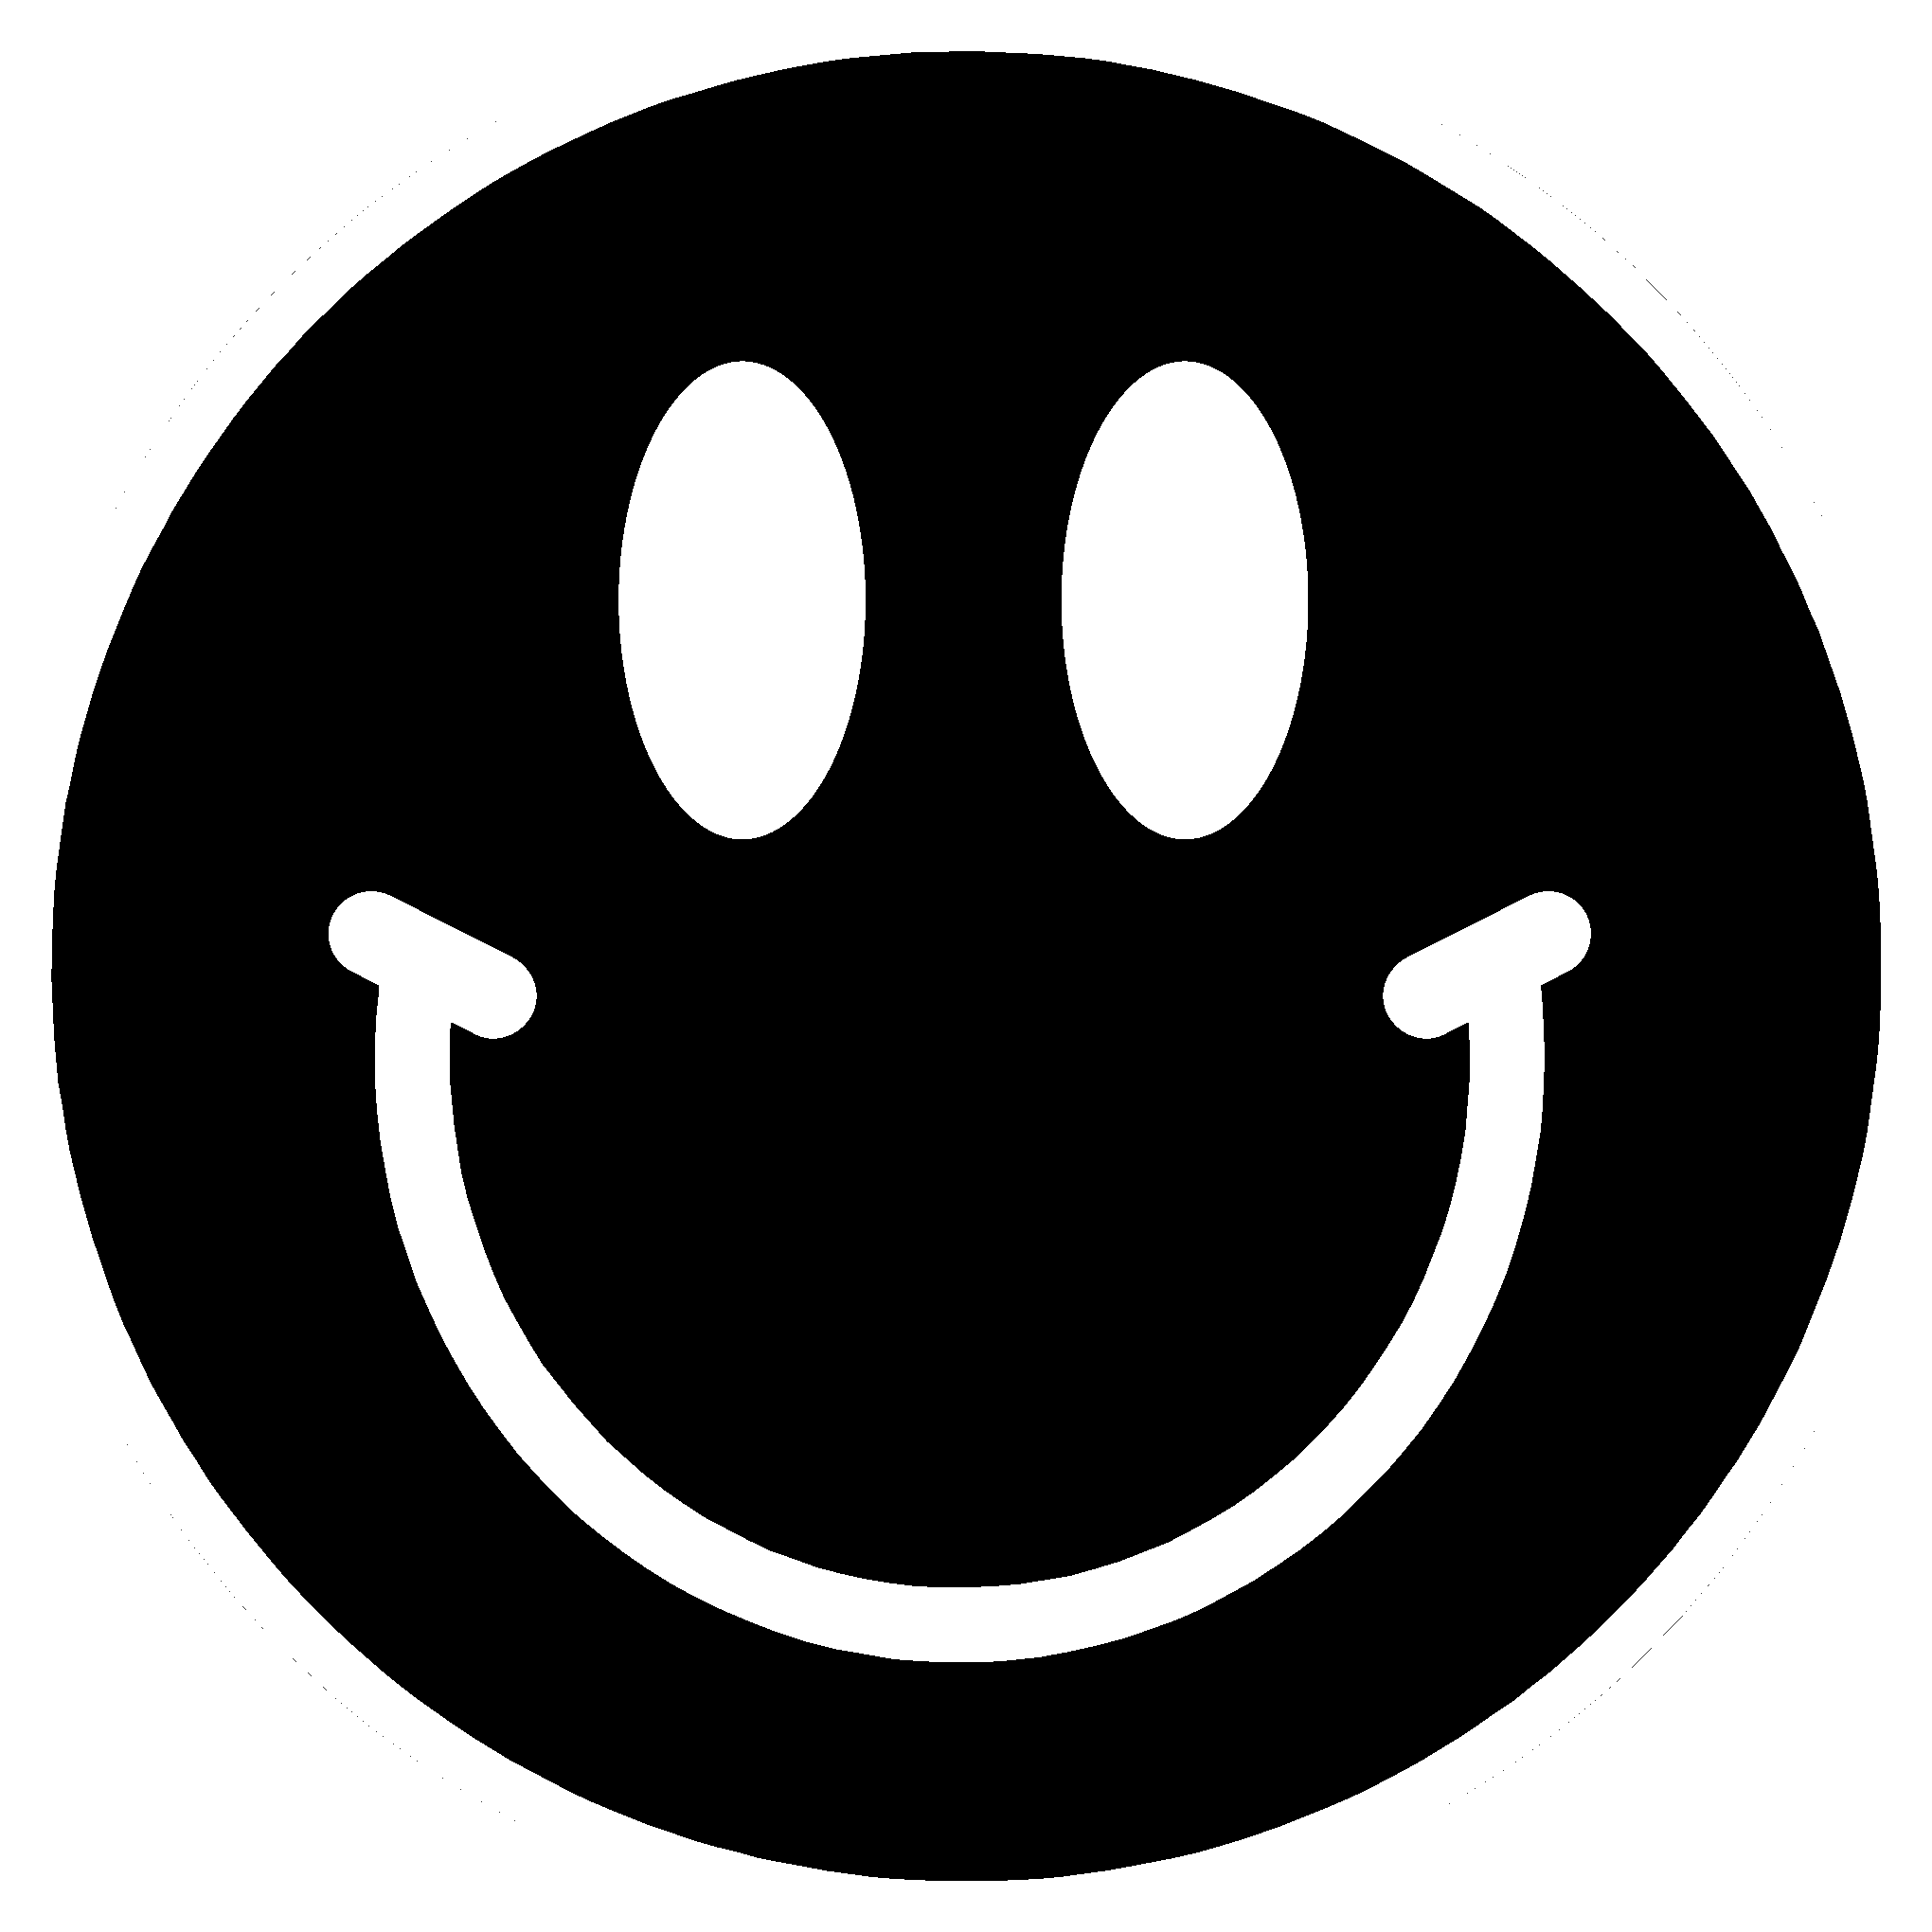 Smiley Face Black Backgrounds Wallpaper Cave #BldZVS.